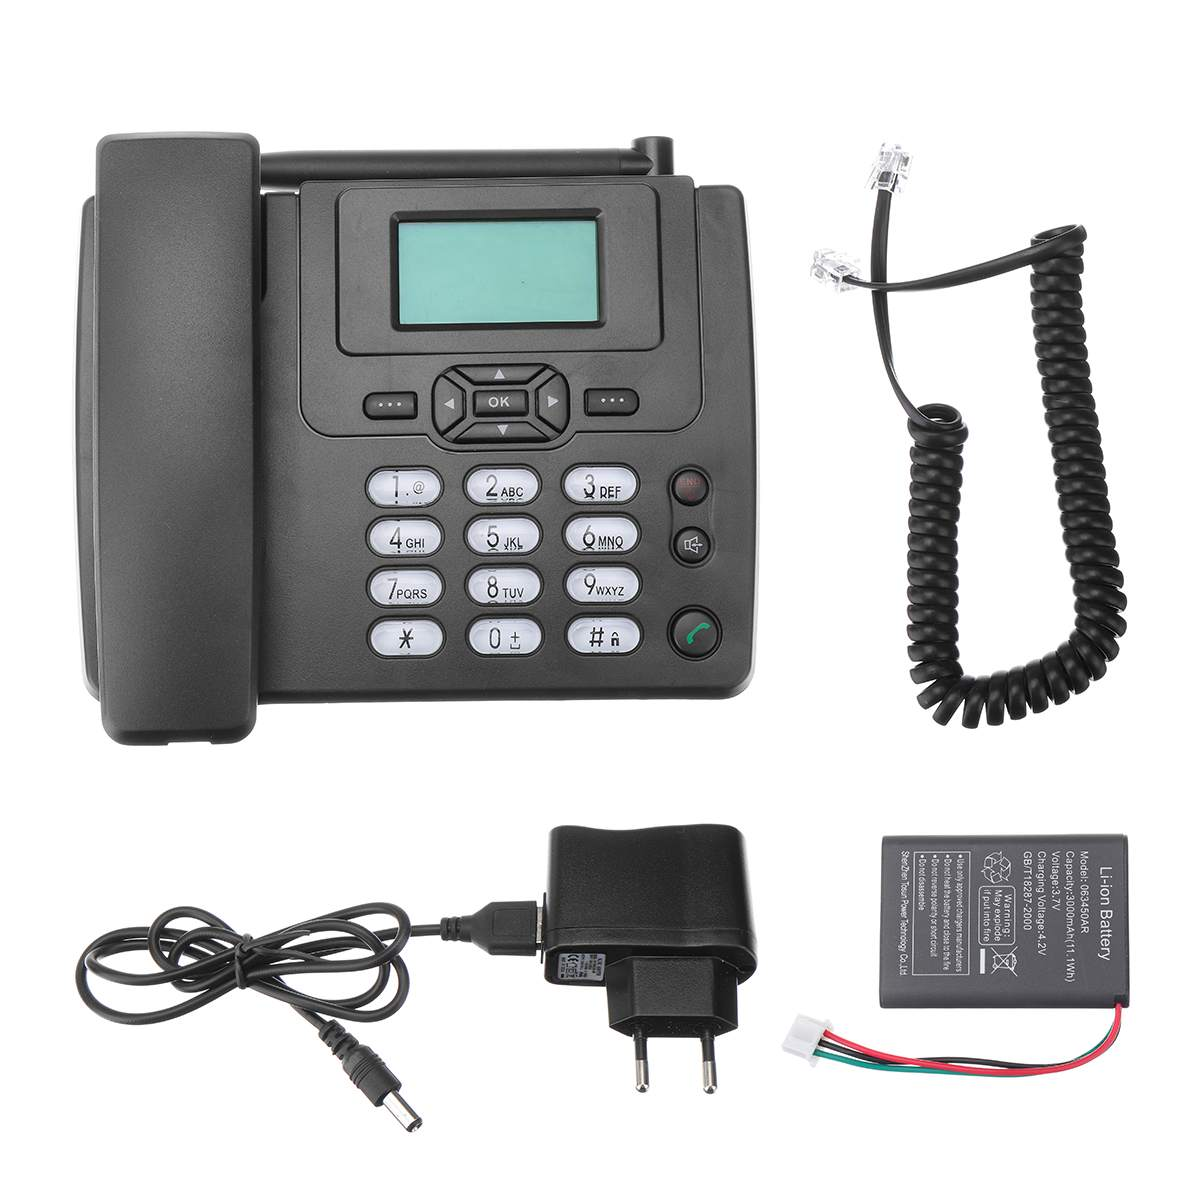 EU Plug Desktop Wireless Telephone GSM Fixed Phone Support SIM Card For House Home Call Center Office Company Hotel